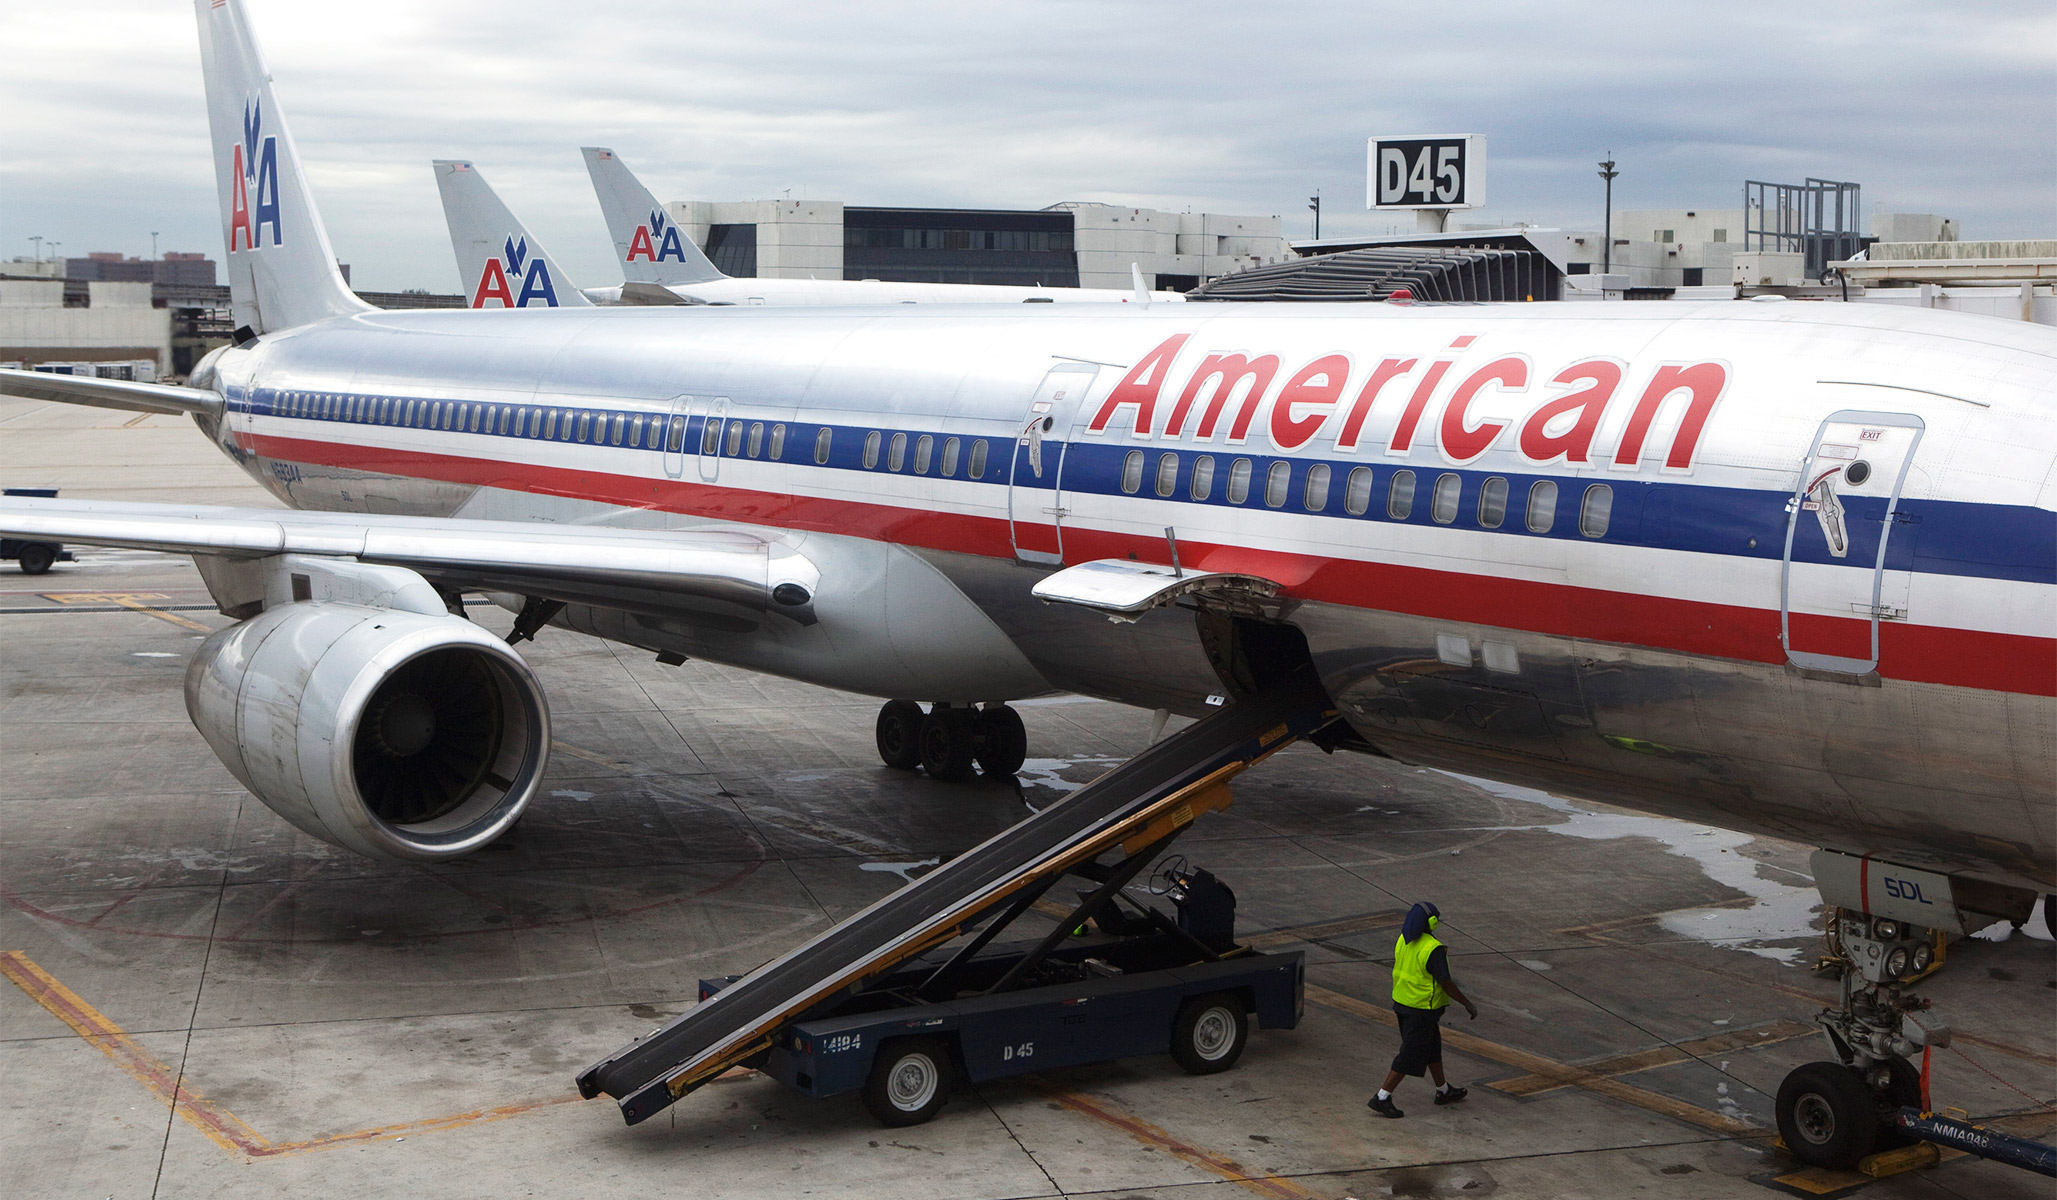 American Airlines Mechanic who Sabotaged Plane before Takeoff Suspected of ISIS Ties